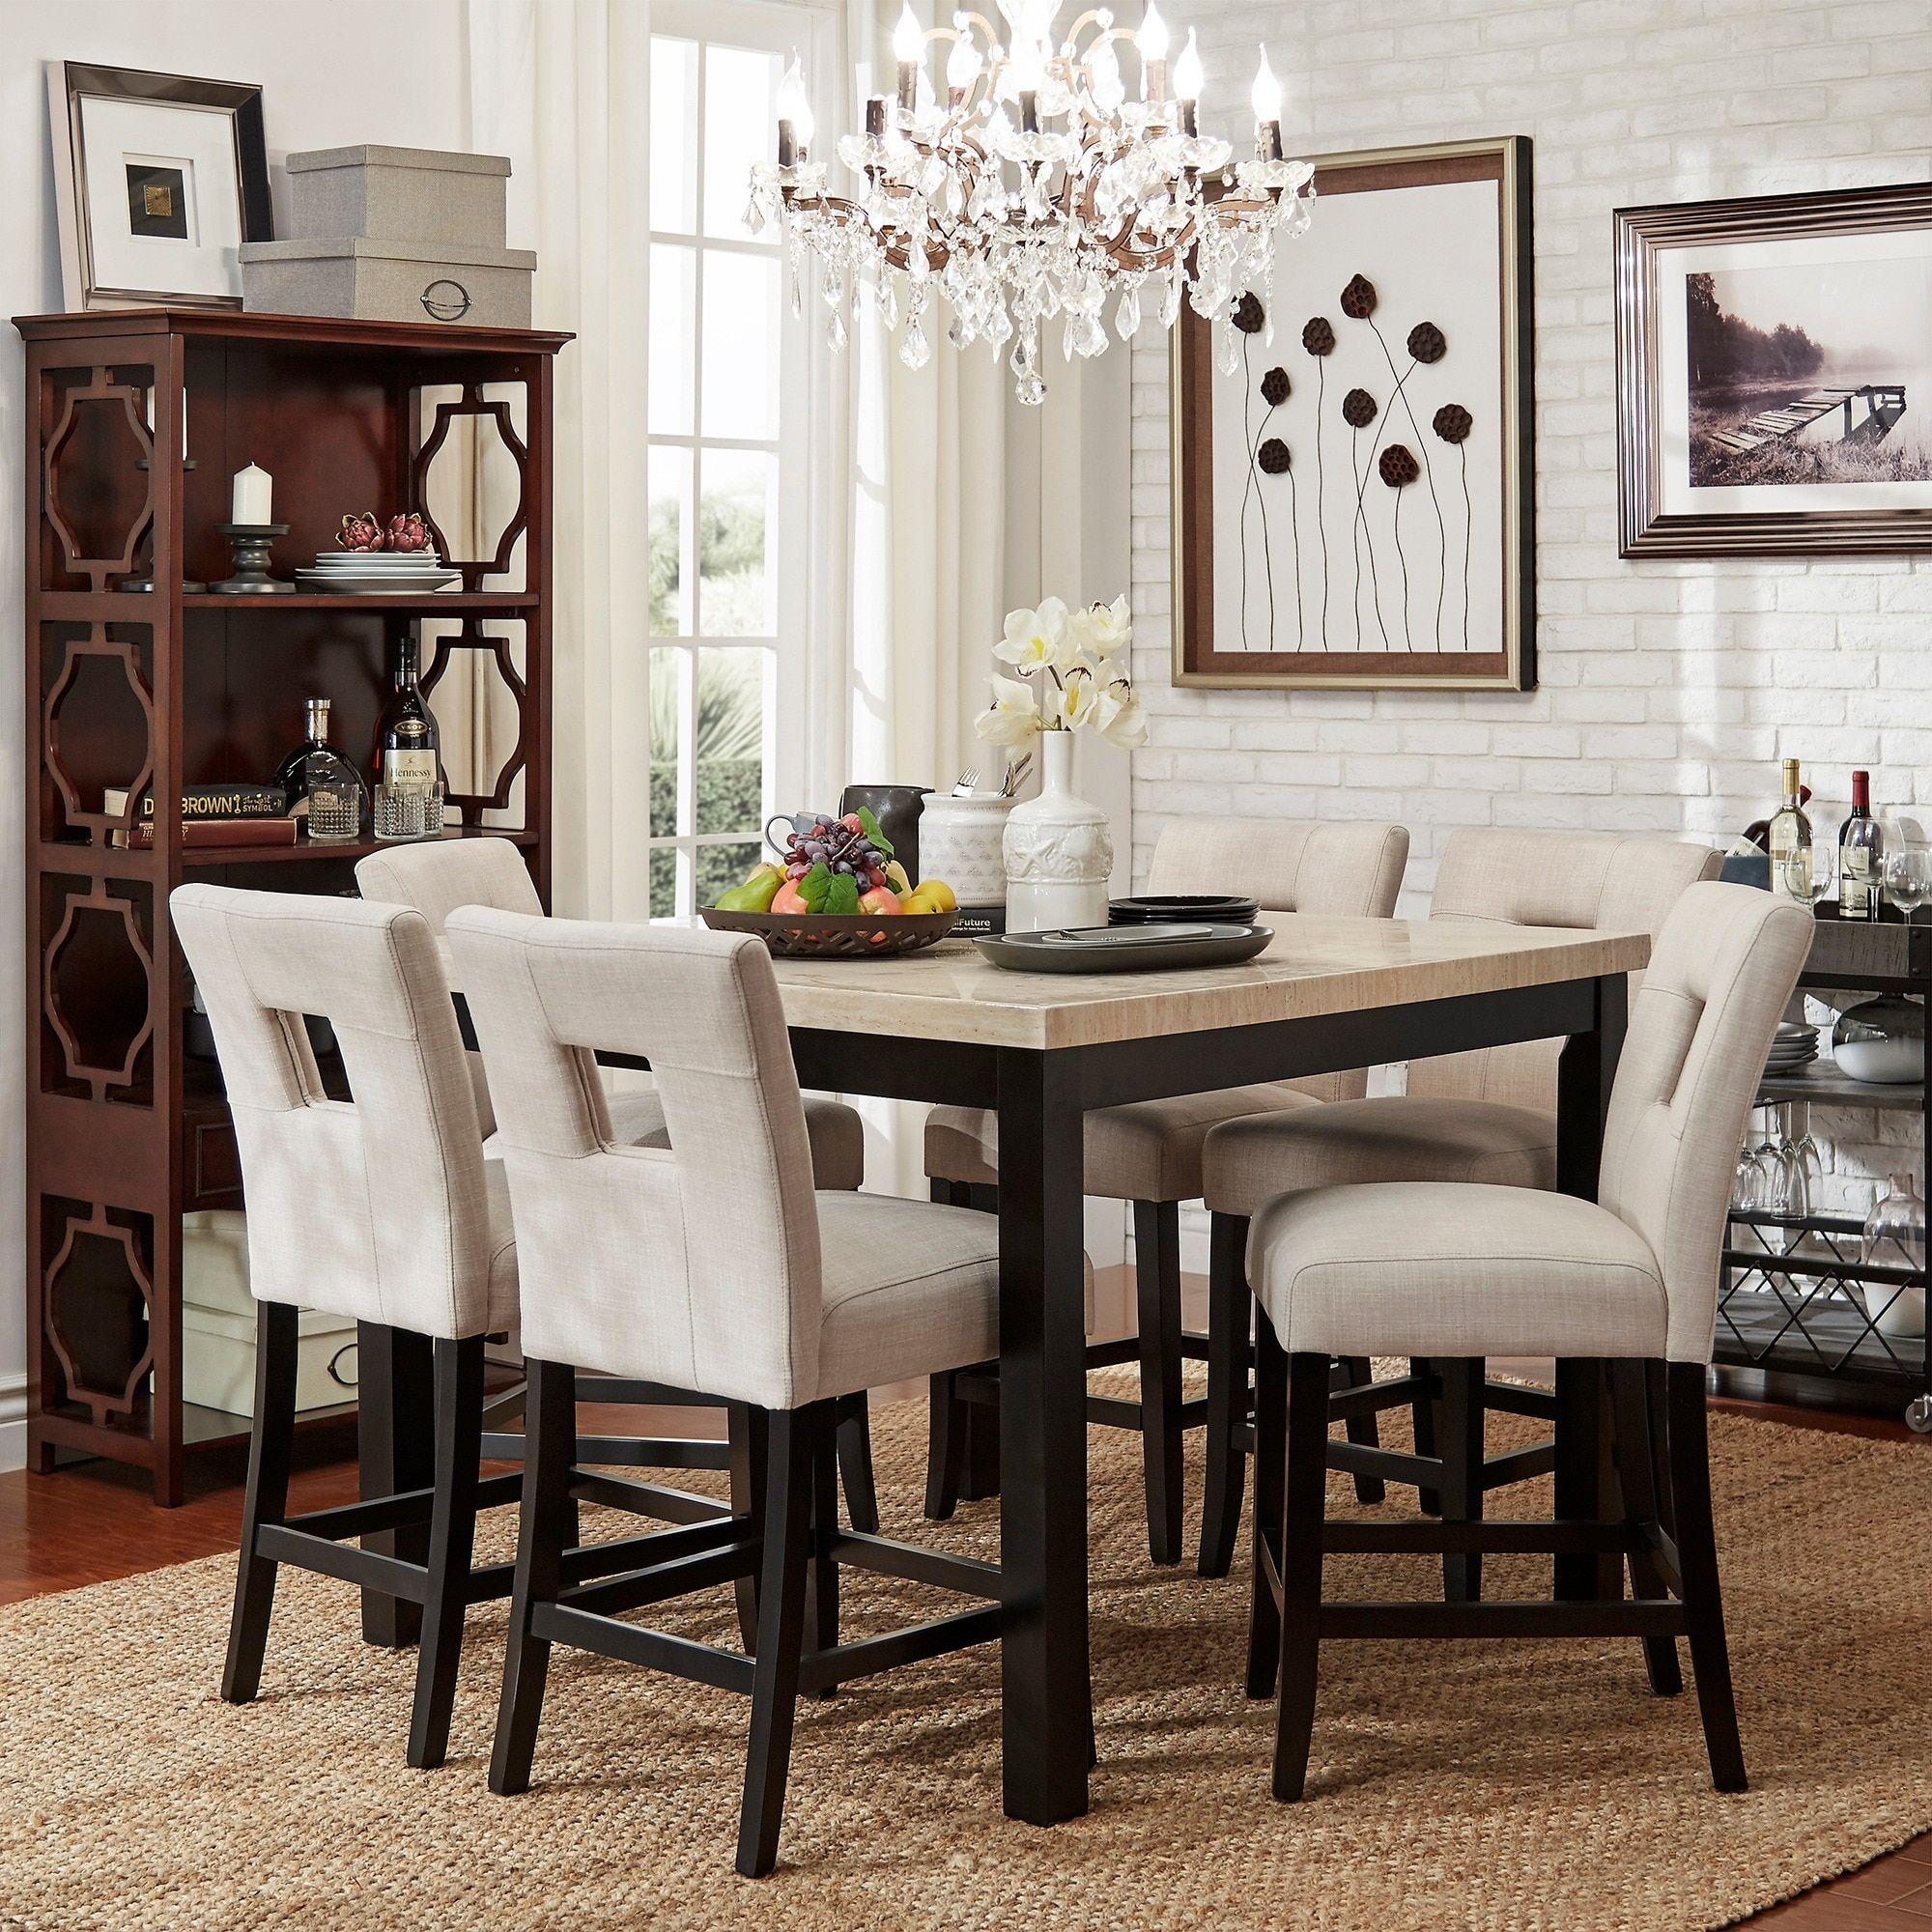 Off White Tufted Dining Chairs